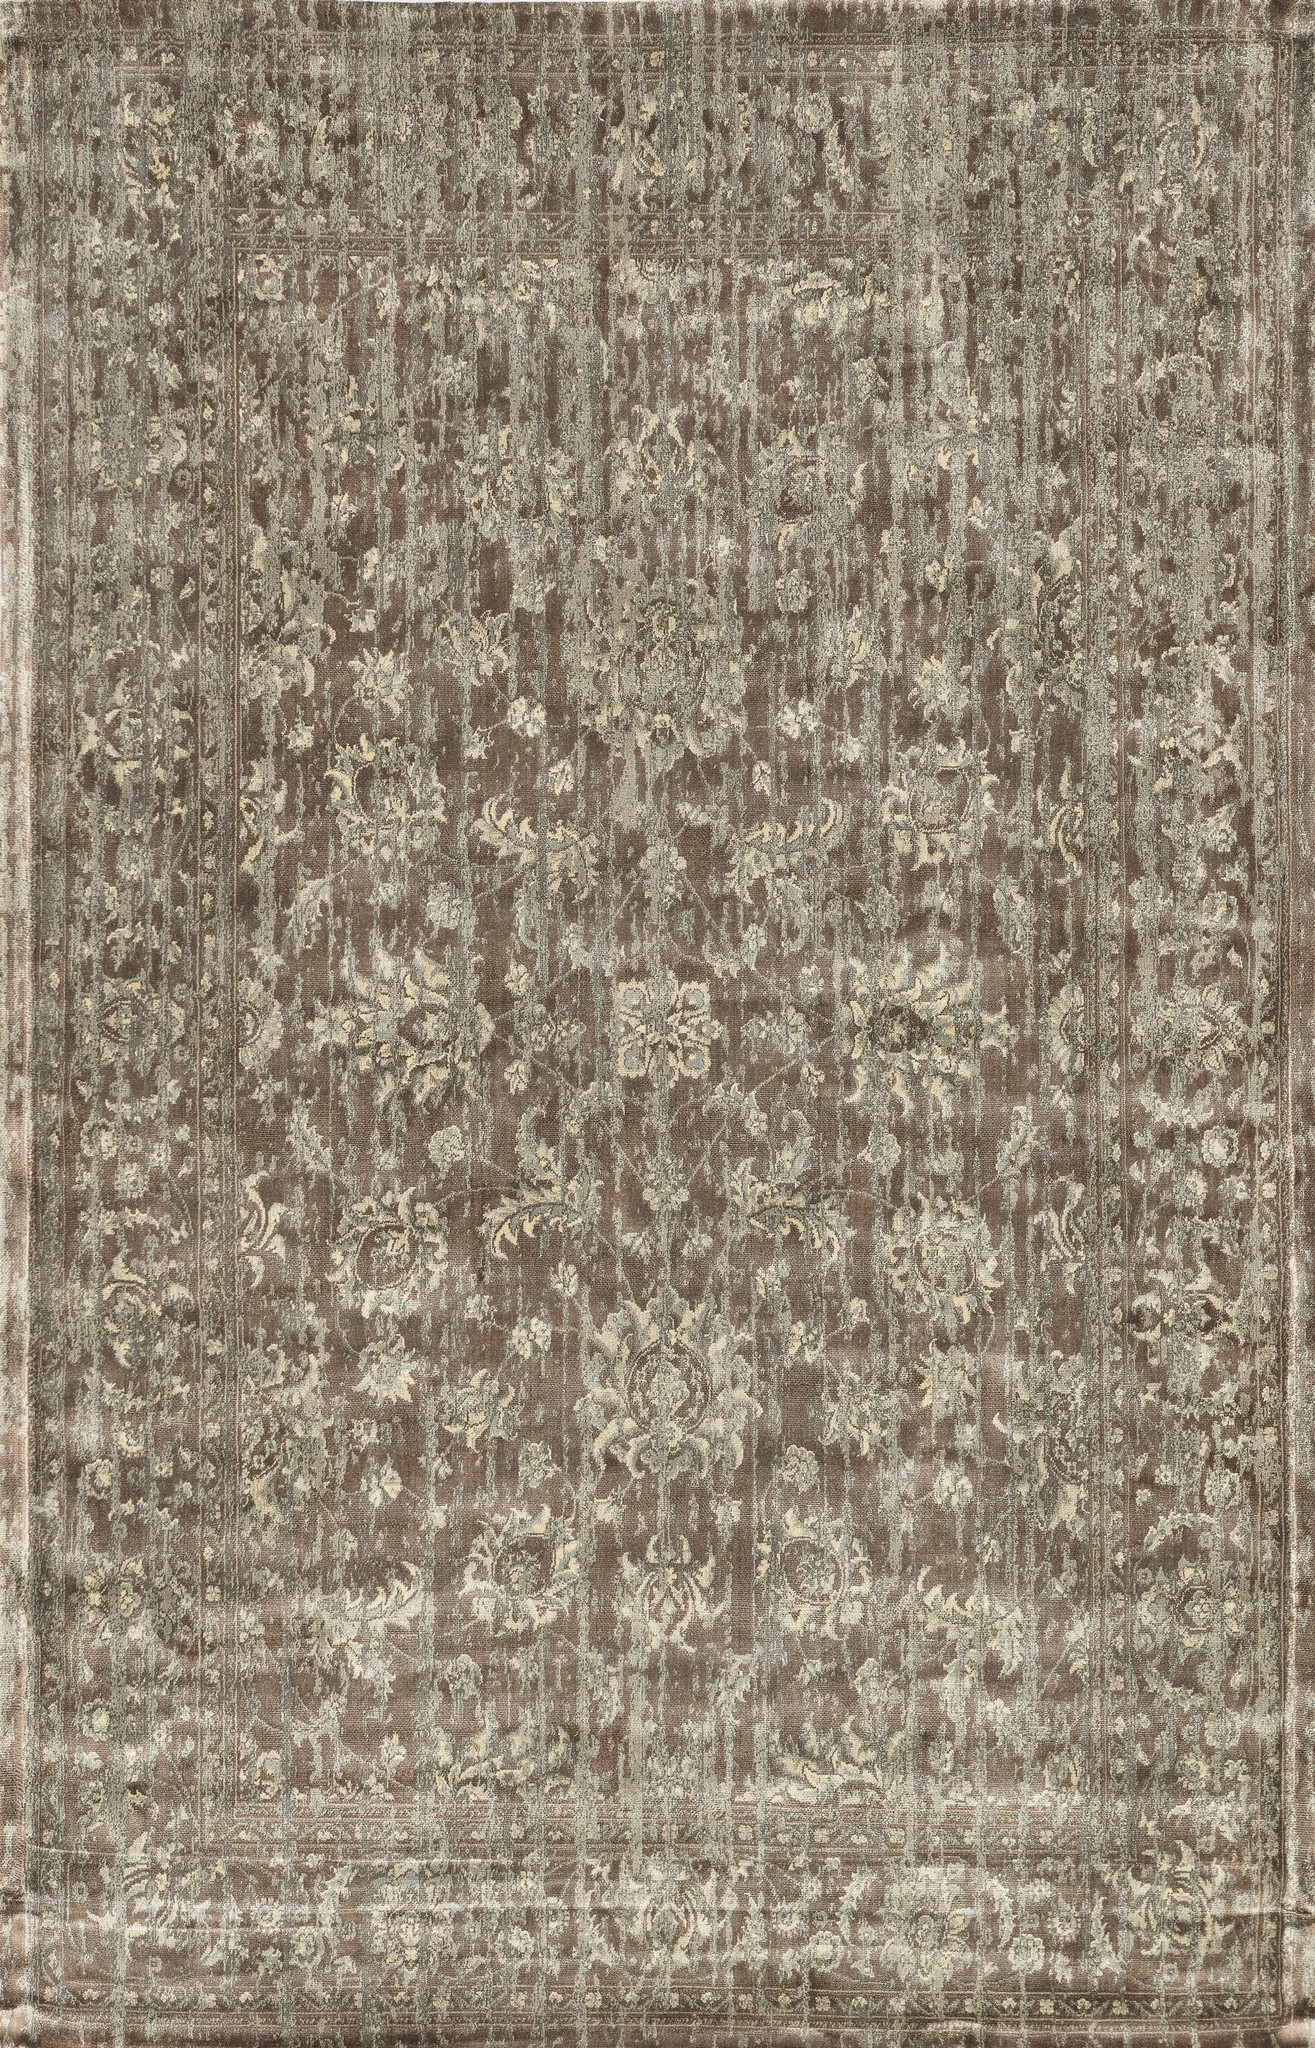 Allure new york 10521 mocha for Area rugs new york